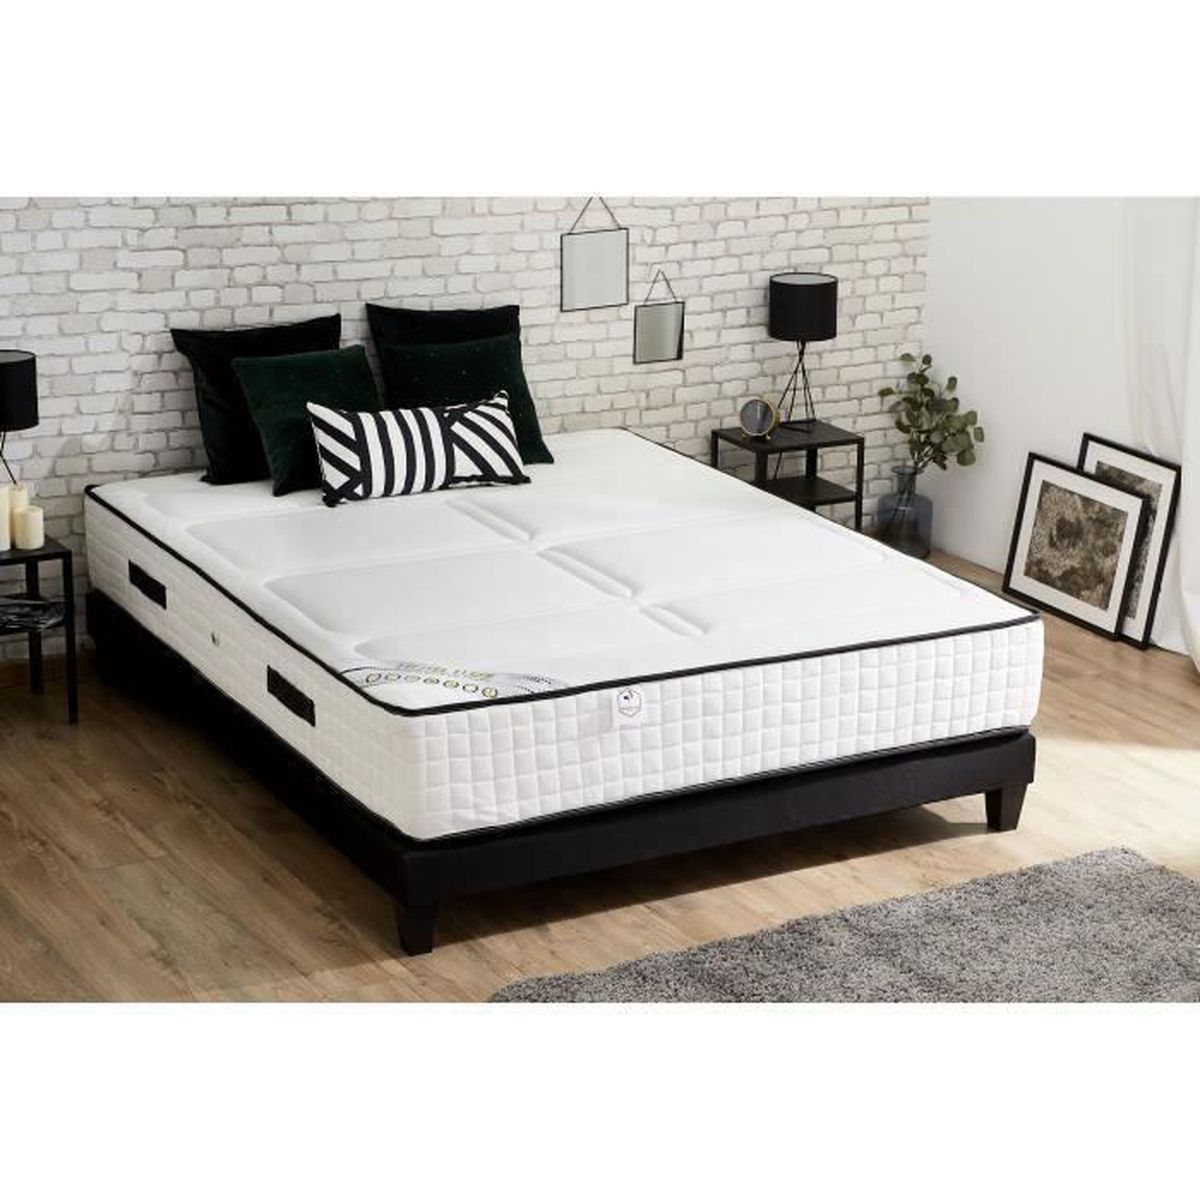 hotel luxe ensemble matelas sommier 160x200 cm 792. Black Bedroom Furniture Sets. Home Design Ideas